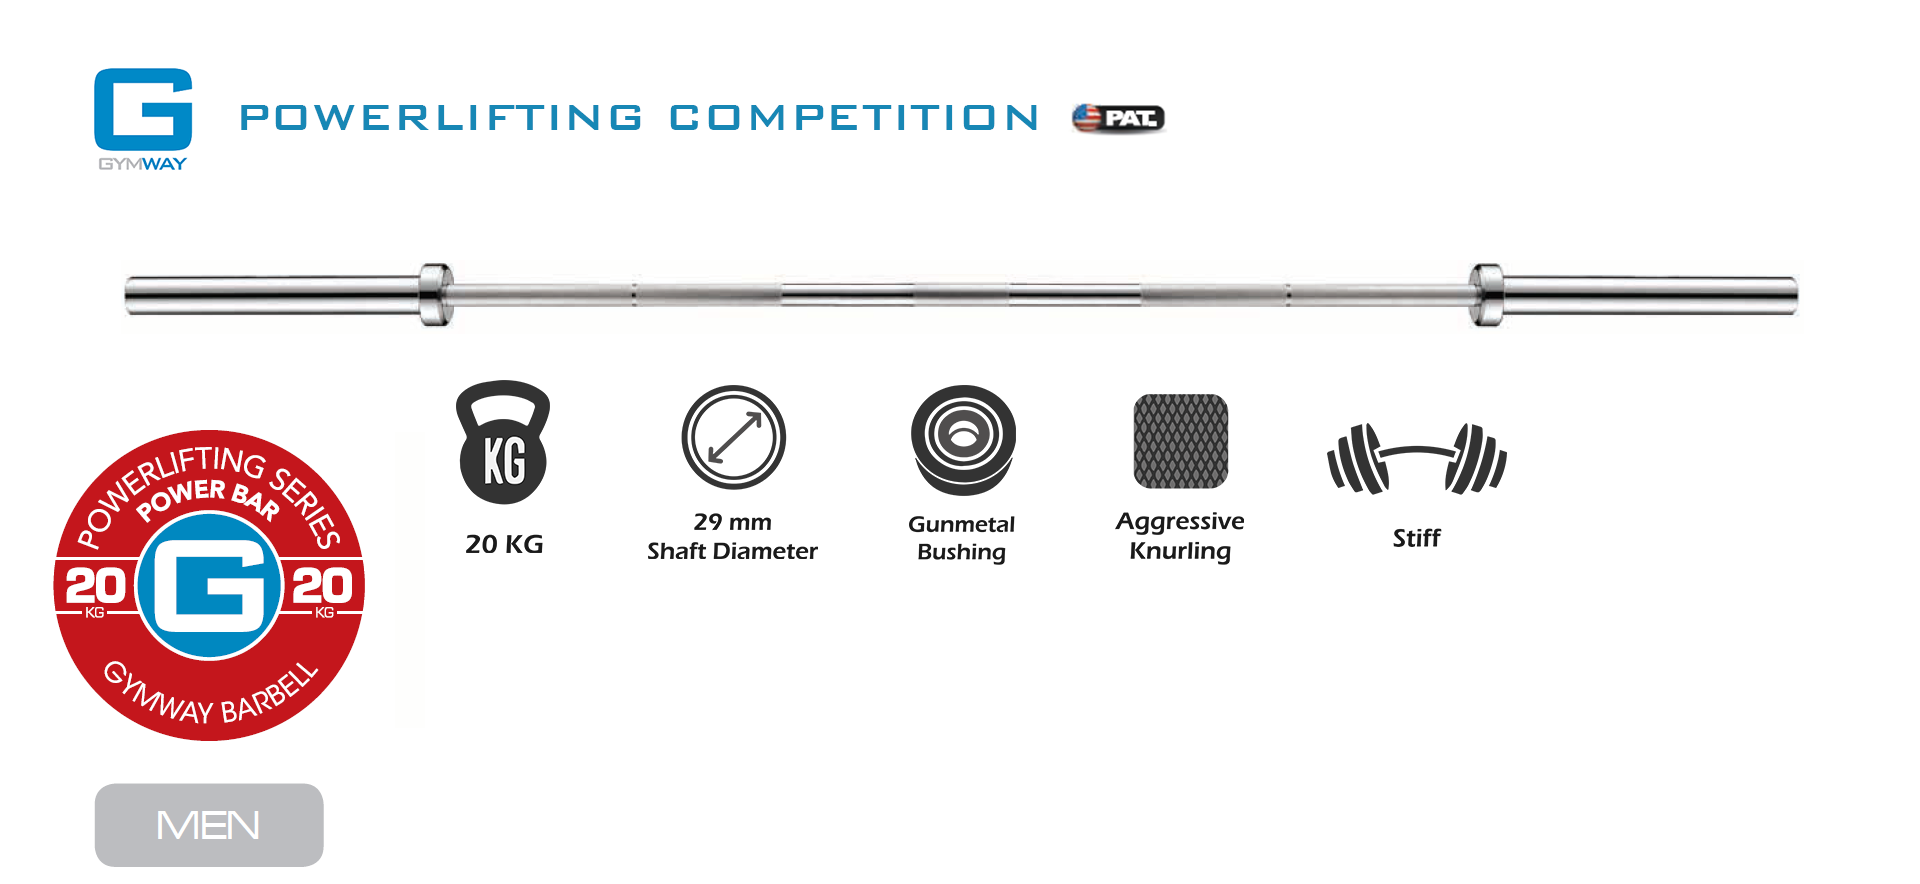 GYMWAY Competition Powerlifting Barbell Specs